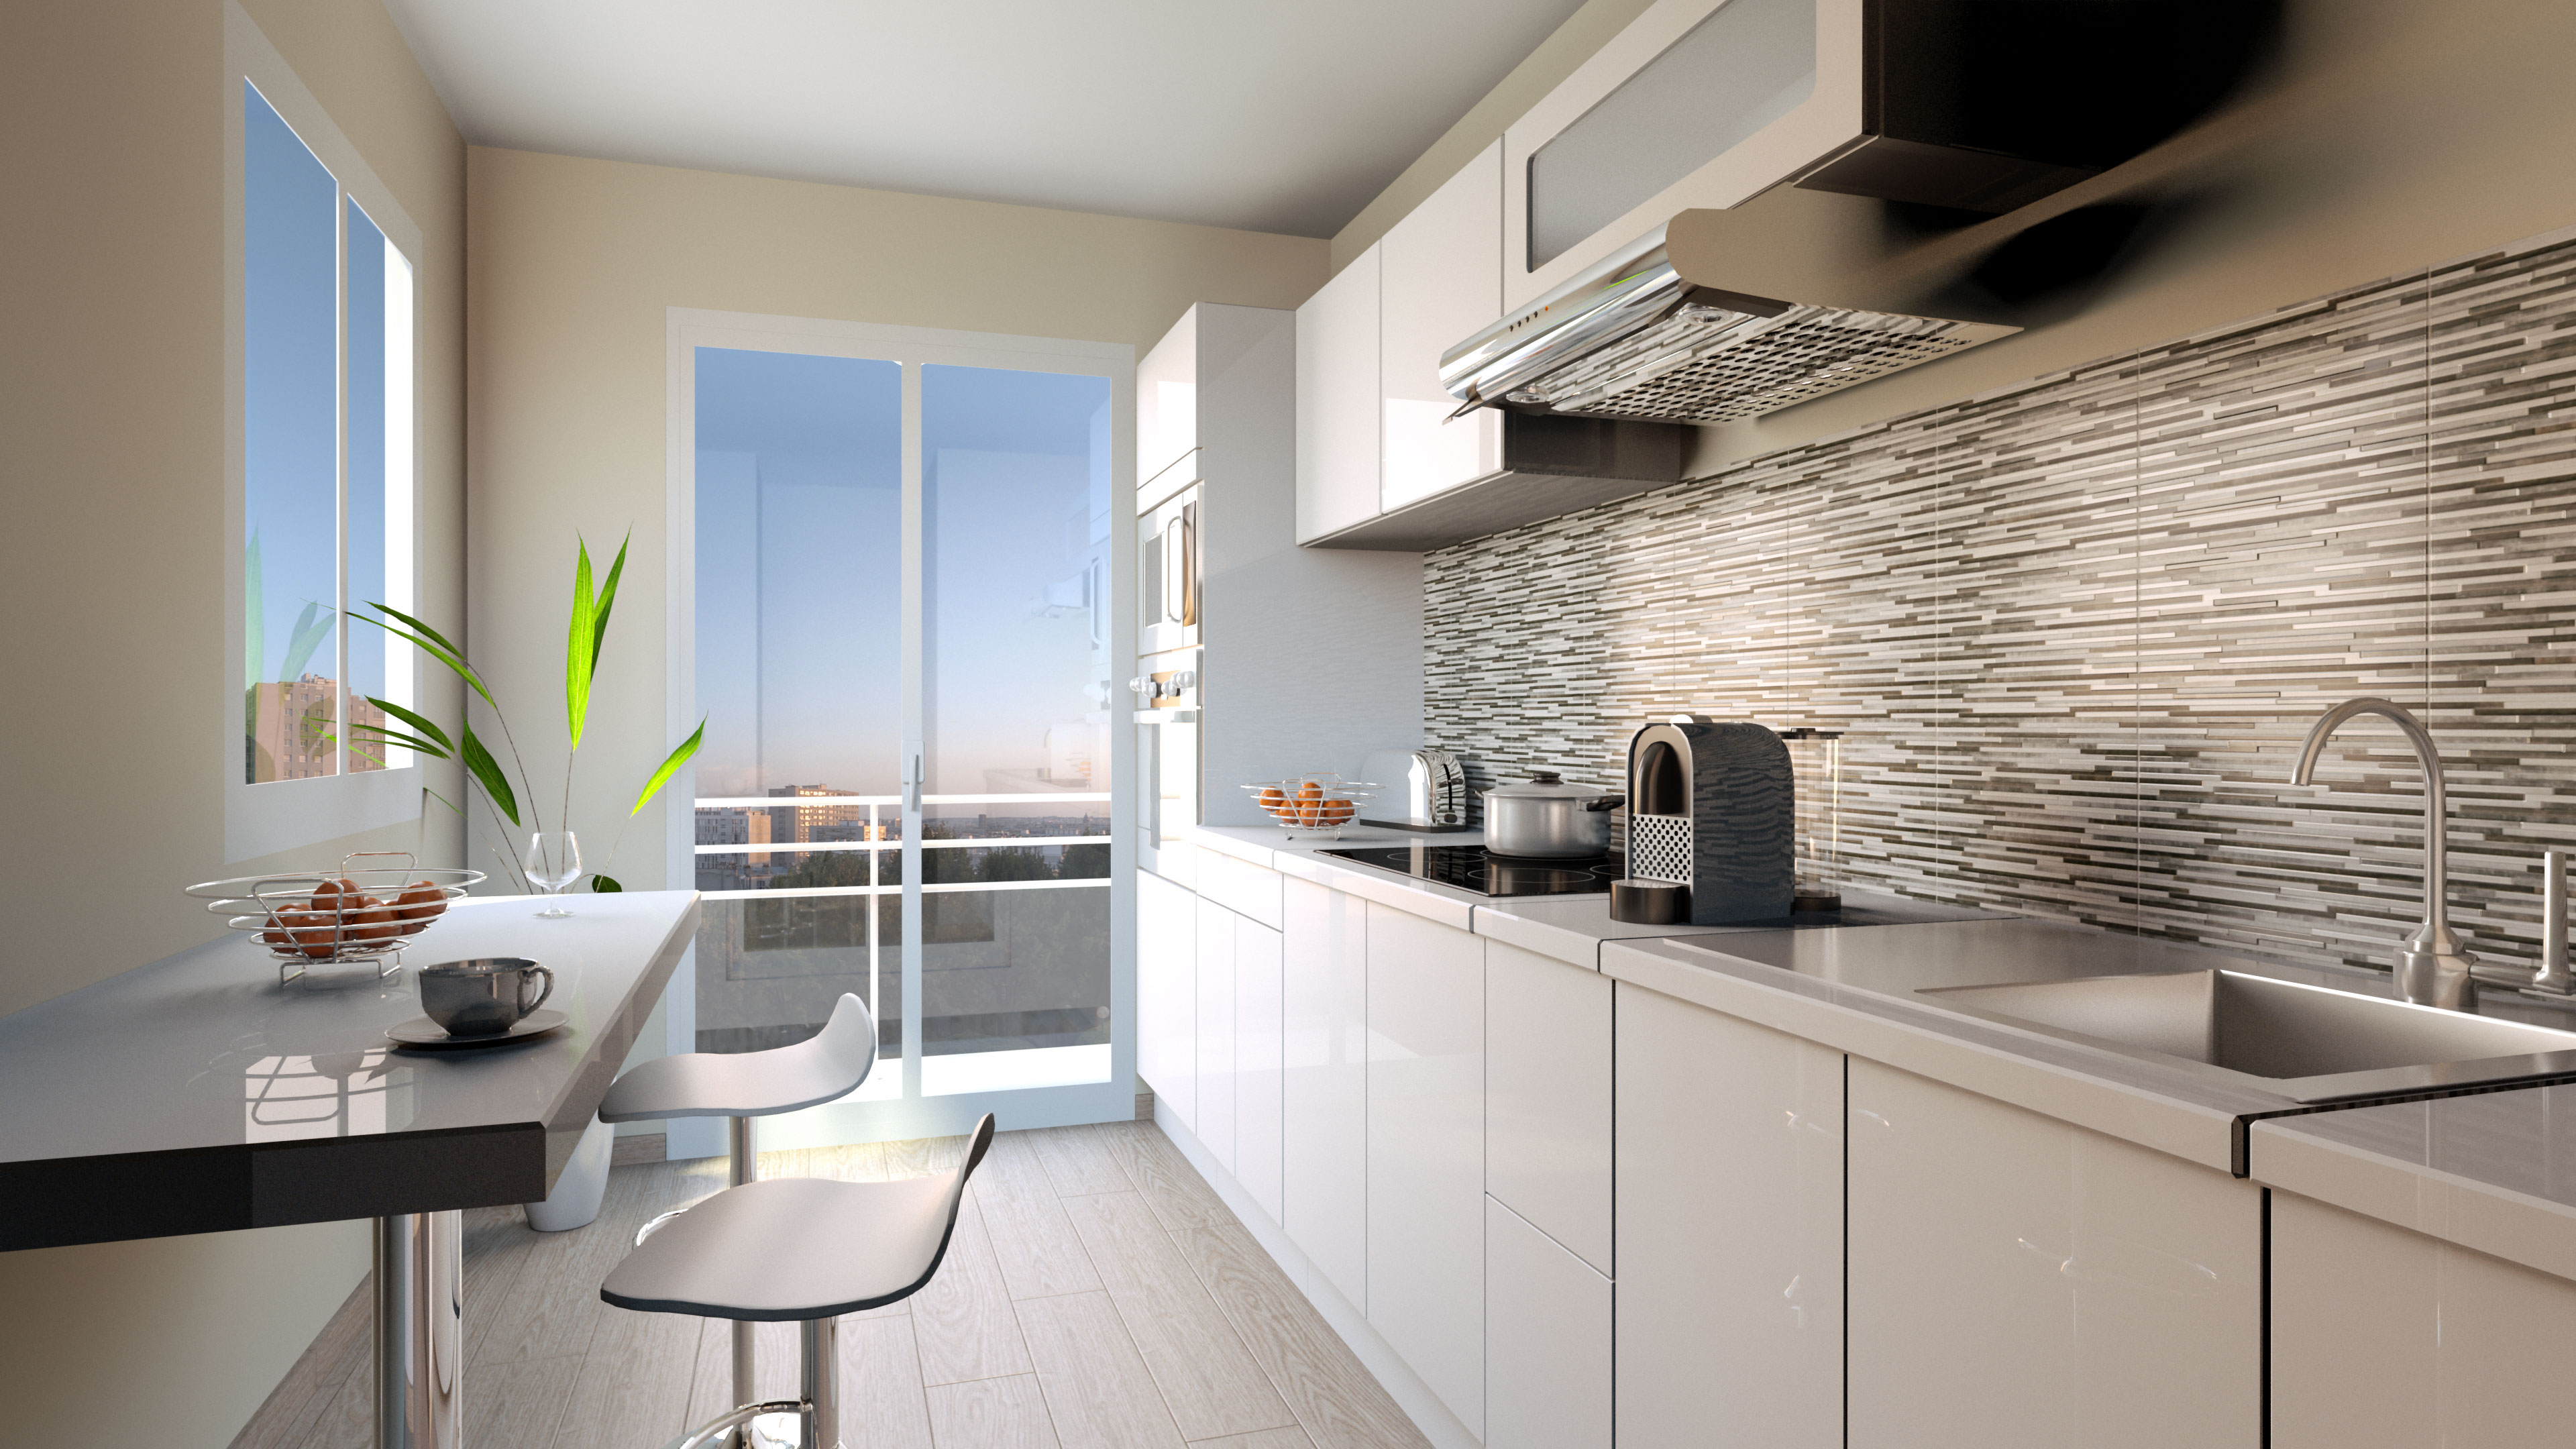 Post Up Your Renderings!-kitchen_galley.jpg